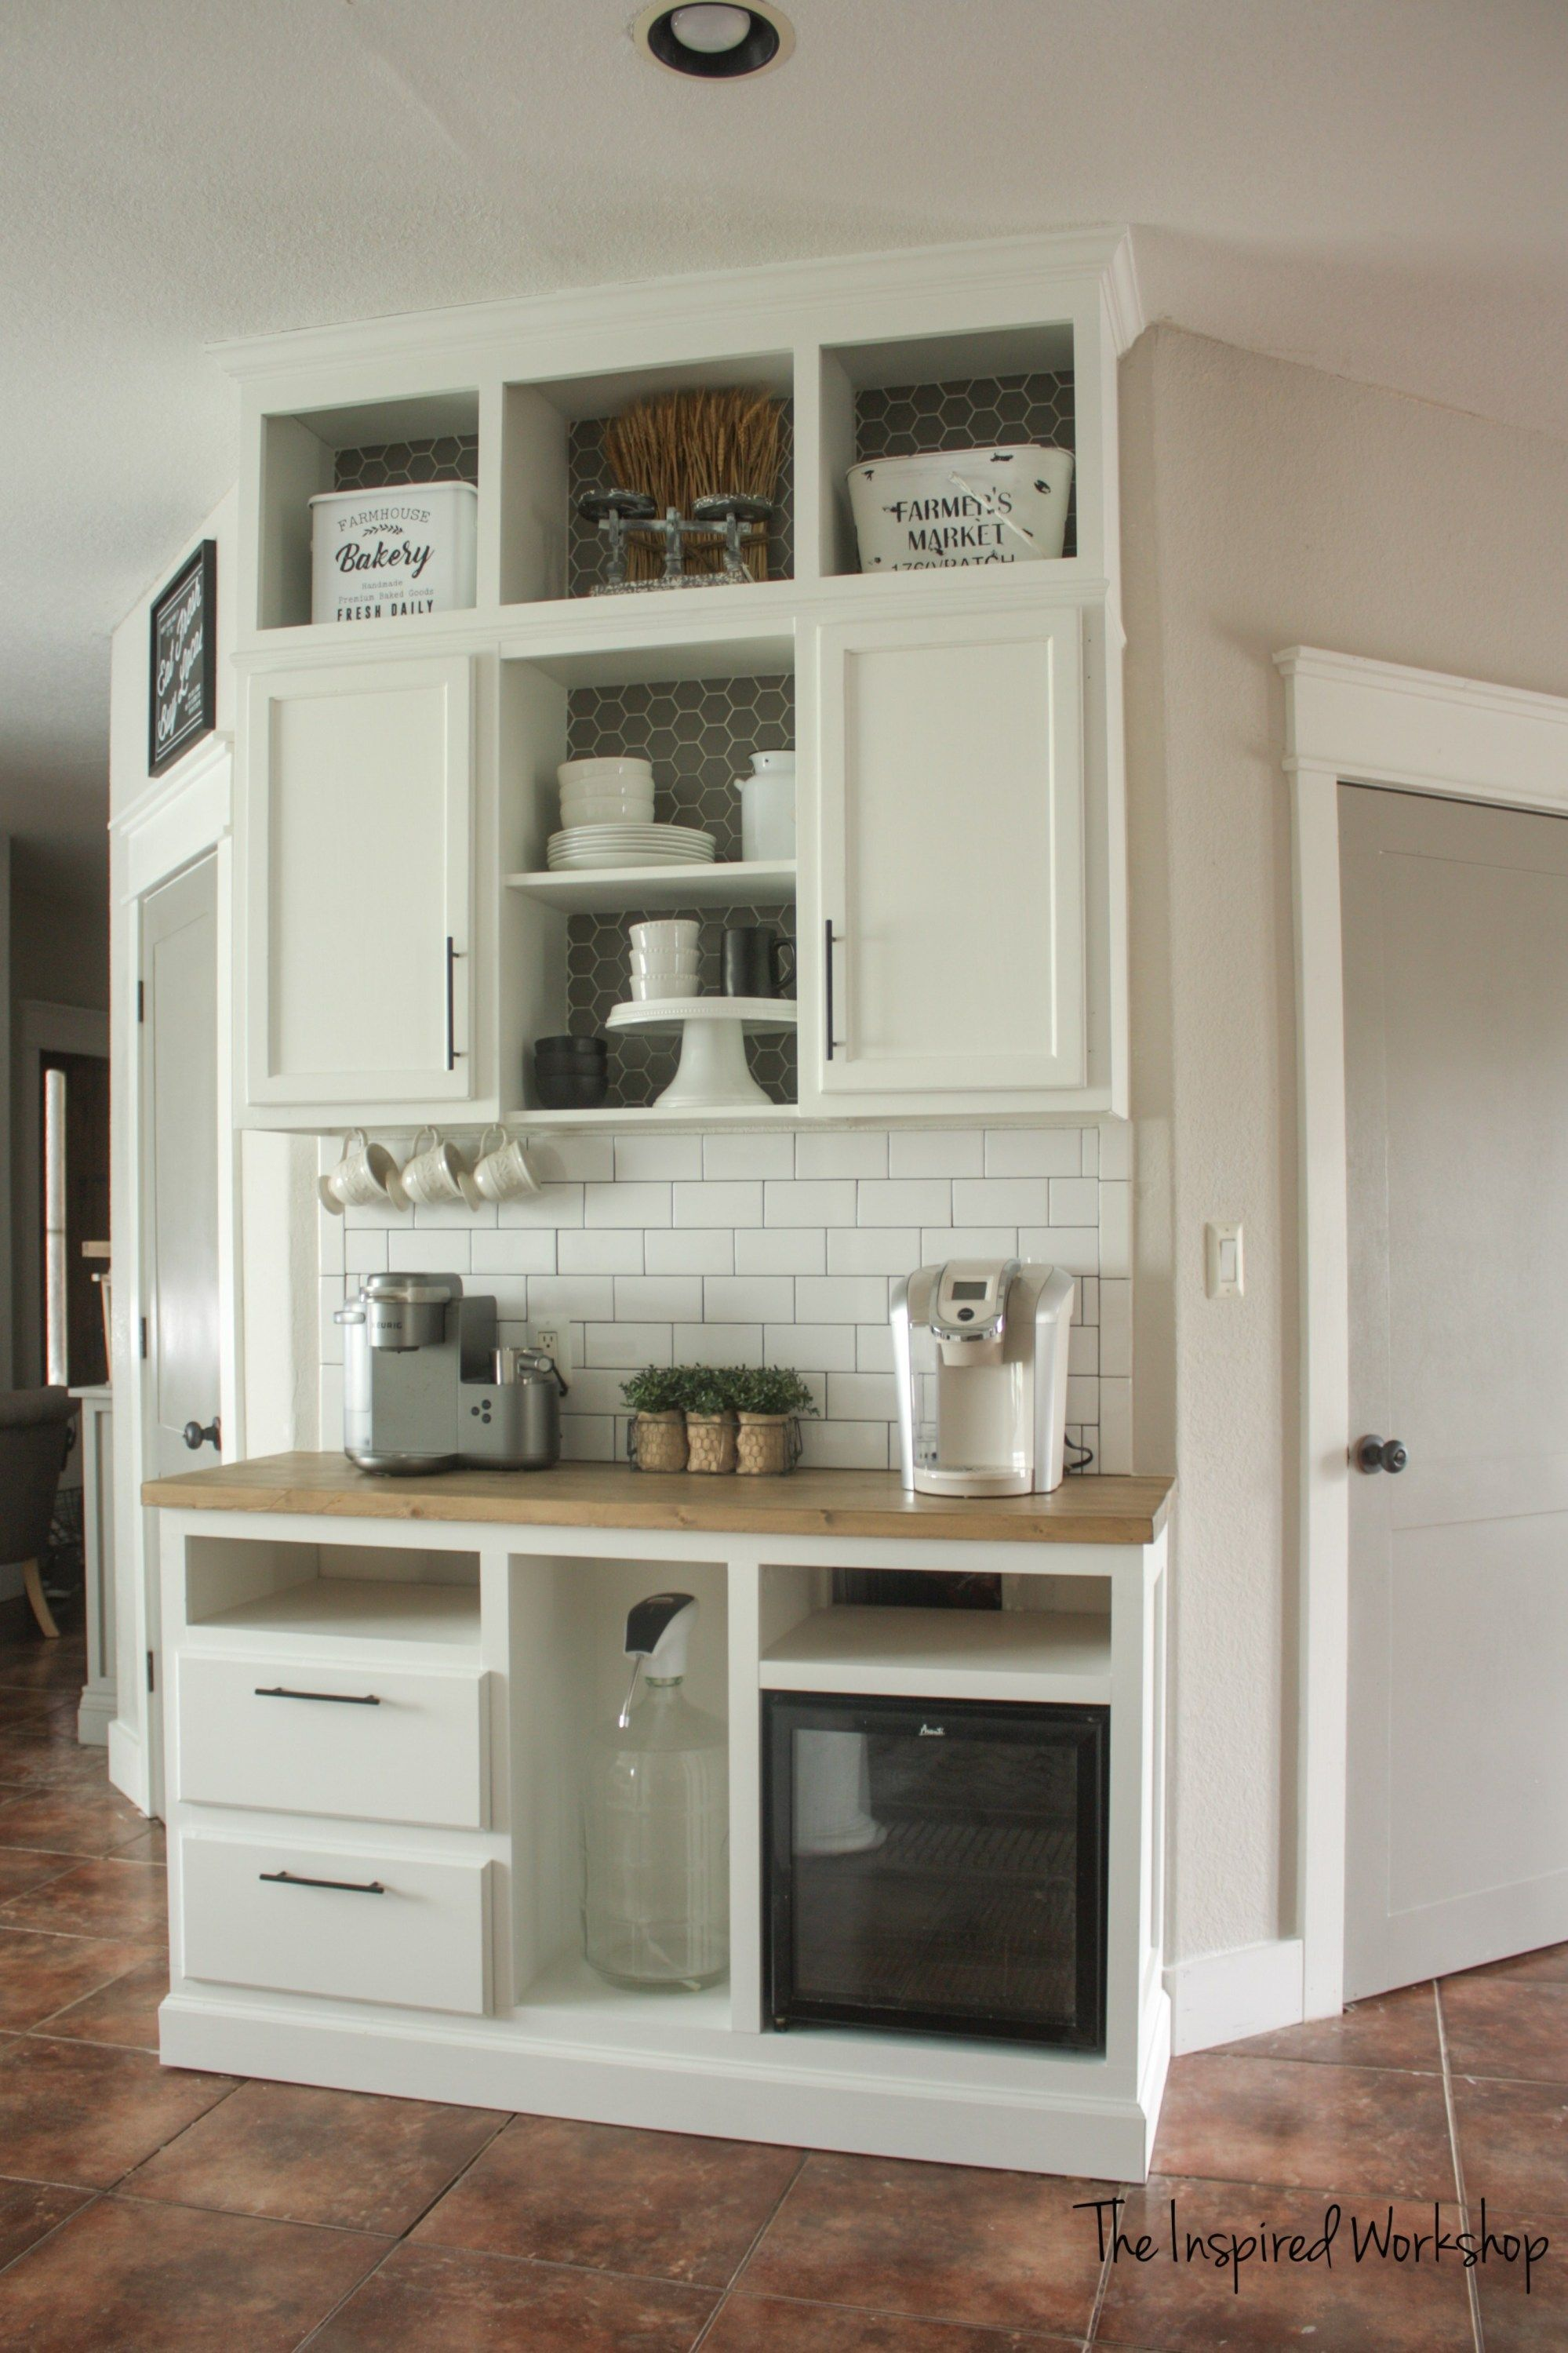 Extending The Kitchen Cabinets And Building Out The Peninsula Kitchen Renovation Kitchen Renovation Diy Kitchen Renovation Easy Kitchen Renovations